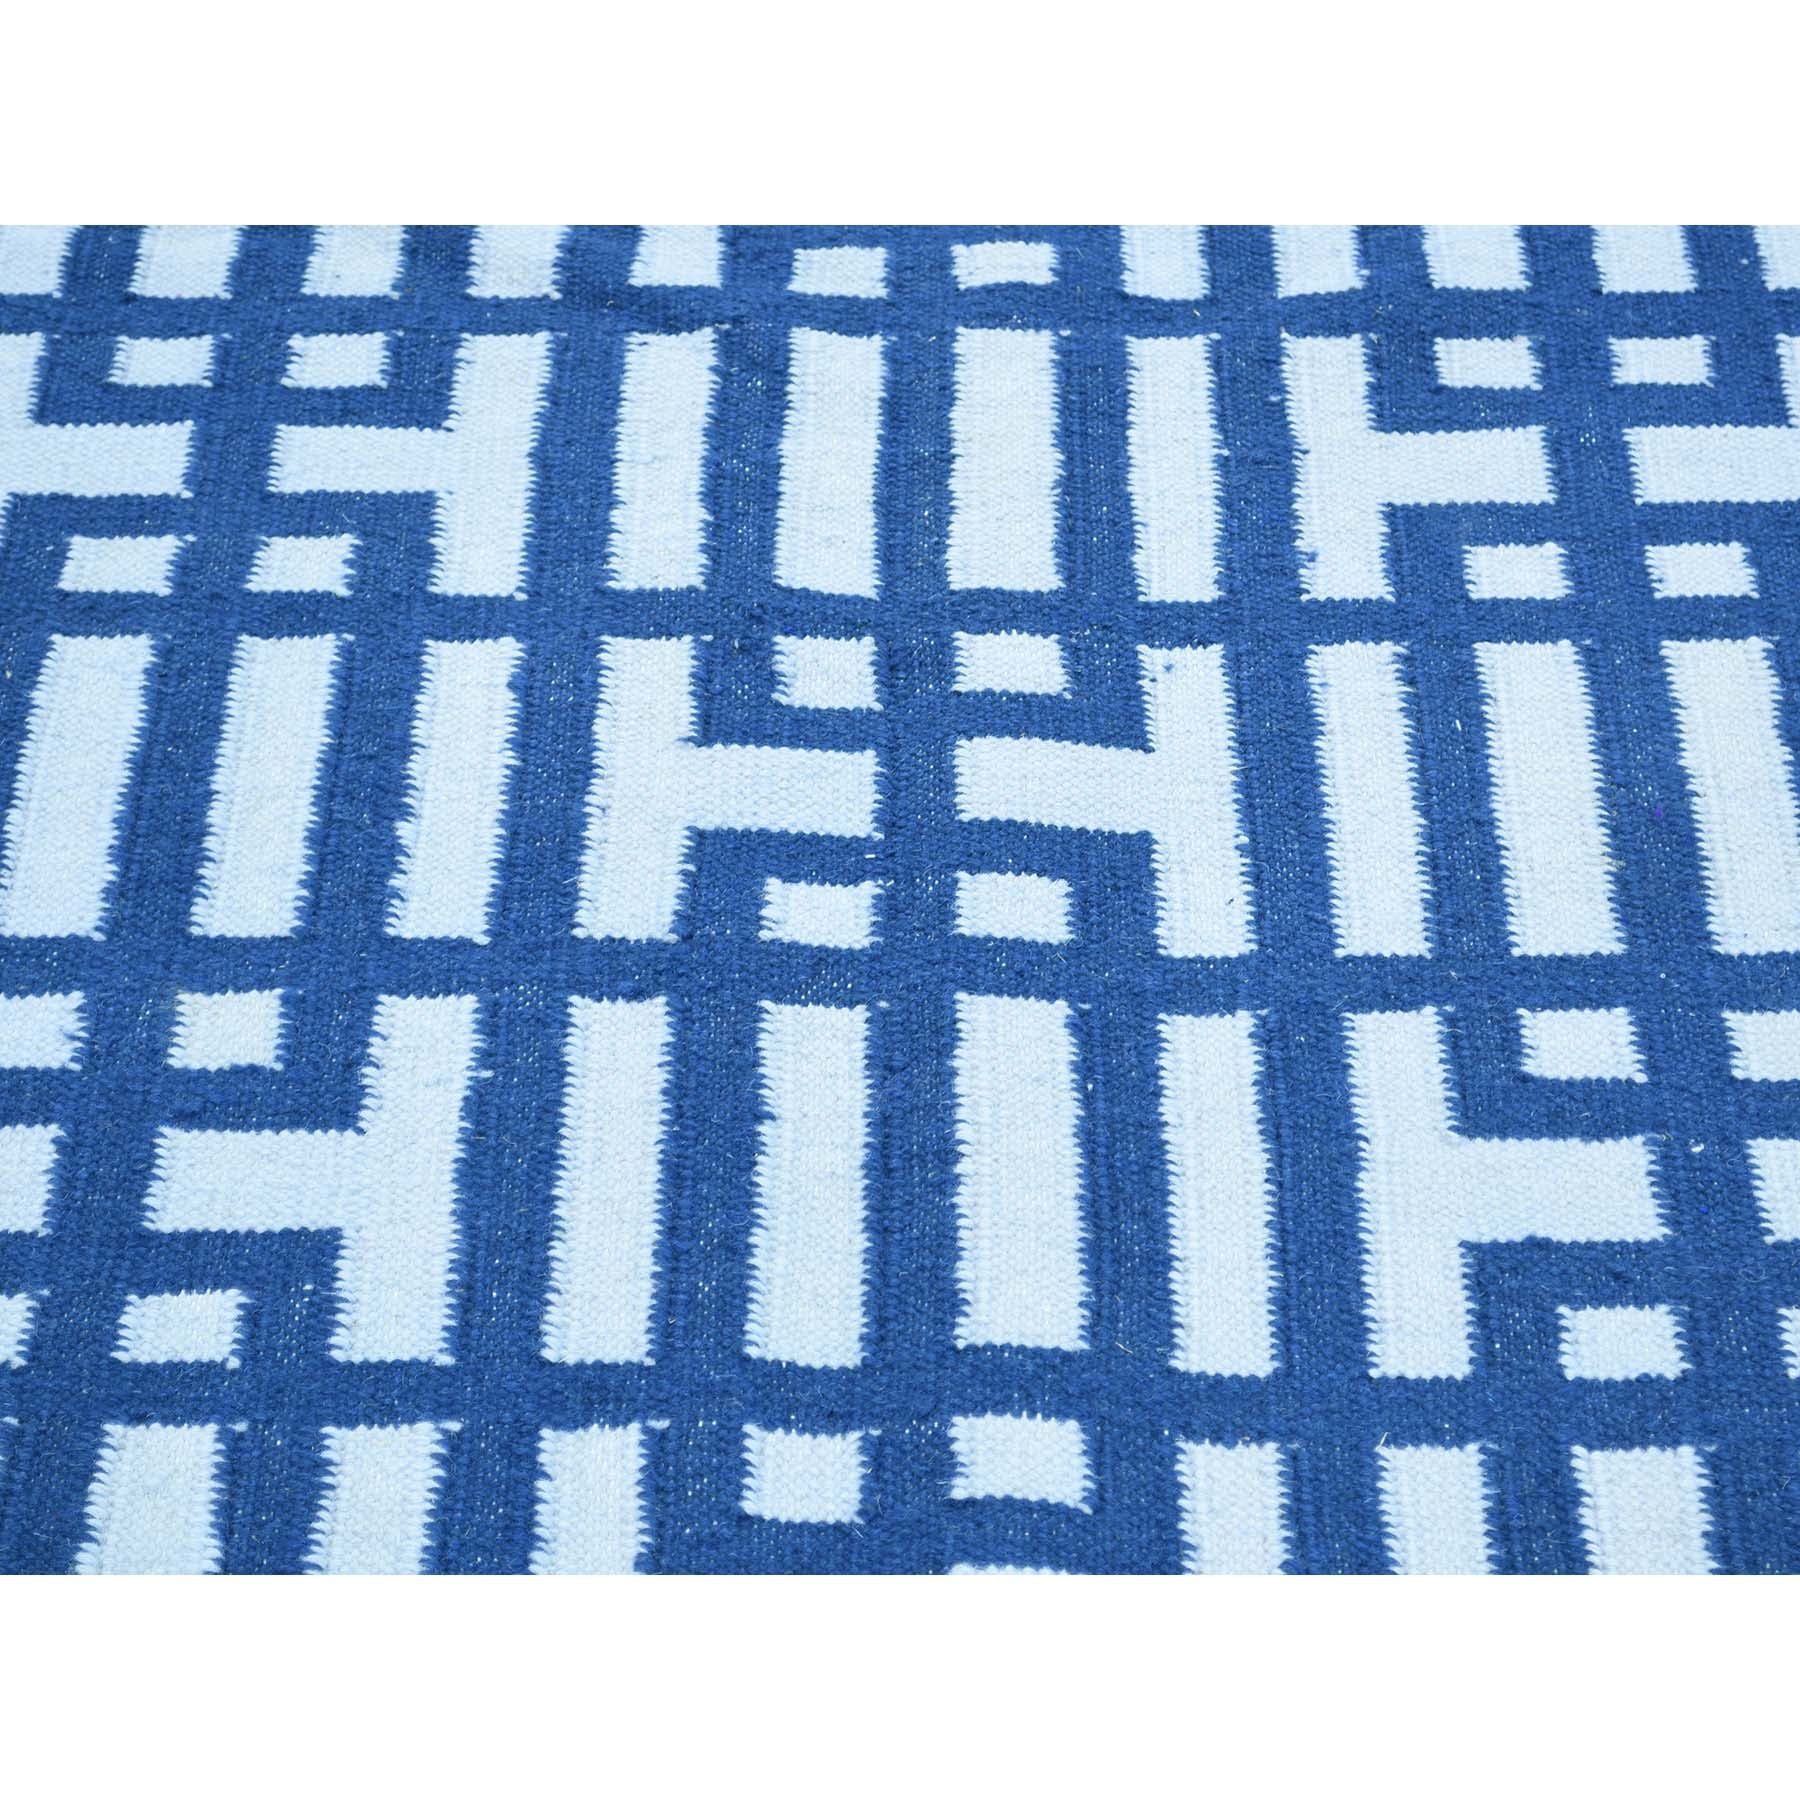 "Handmade Flat Weave Rectangle Rug > Design# SH32081 > Size: 5'-2"" x 7'-0"" [ONLINE ONLY]"